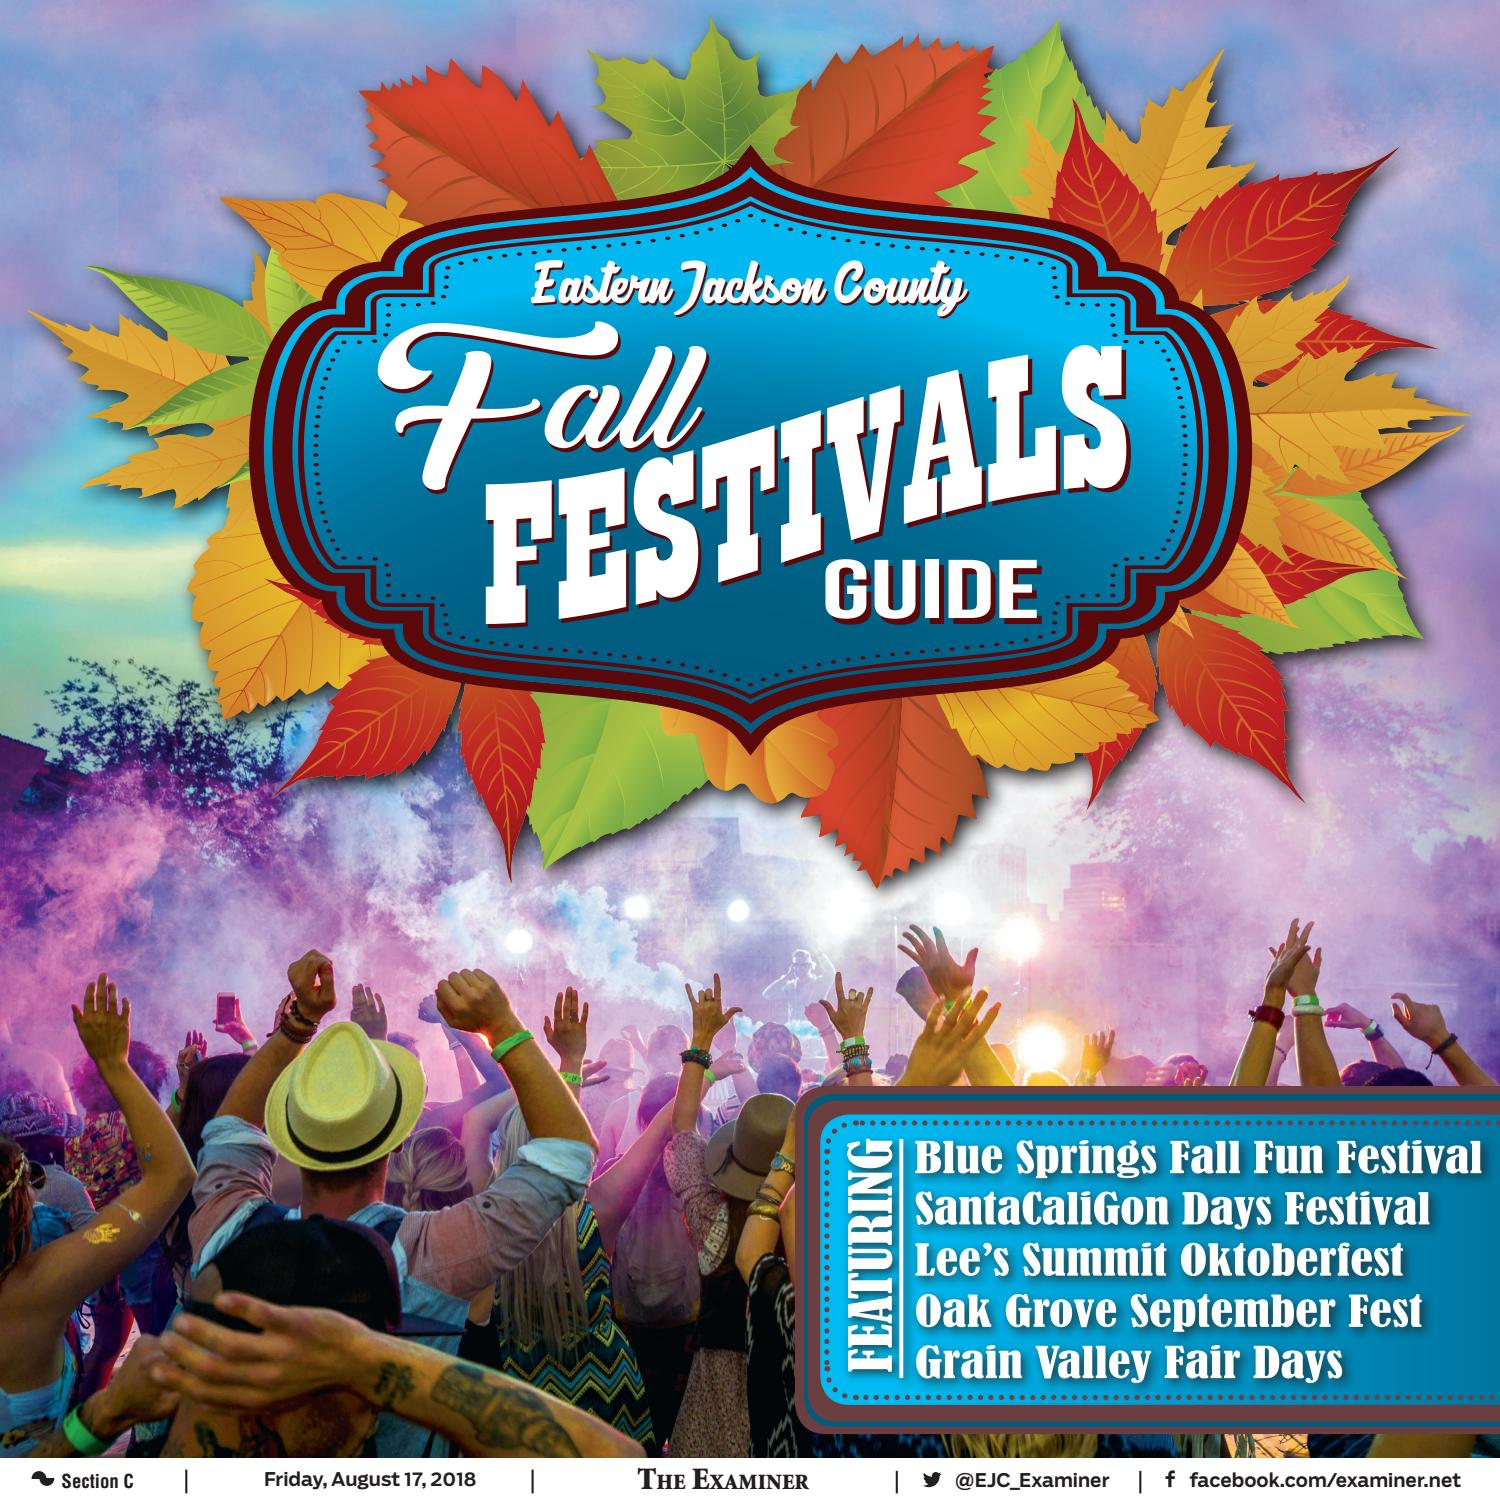 The 2018 Eastern Jackson County Fall Festivals Guide by The